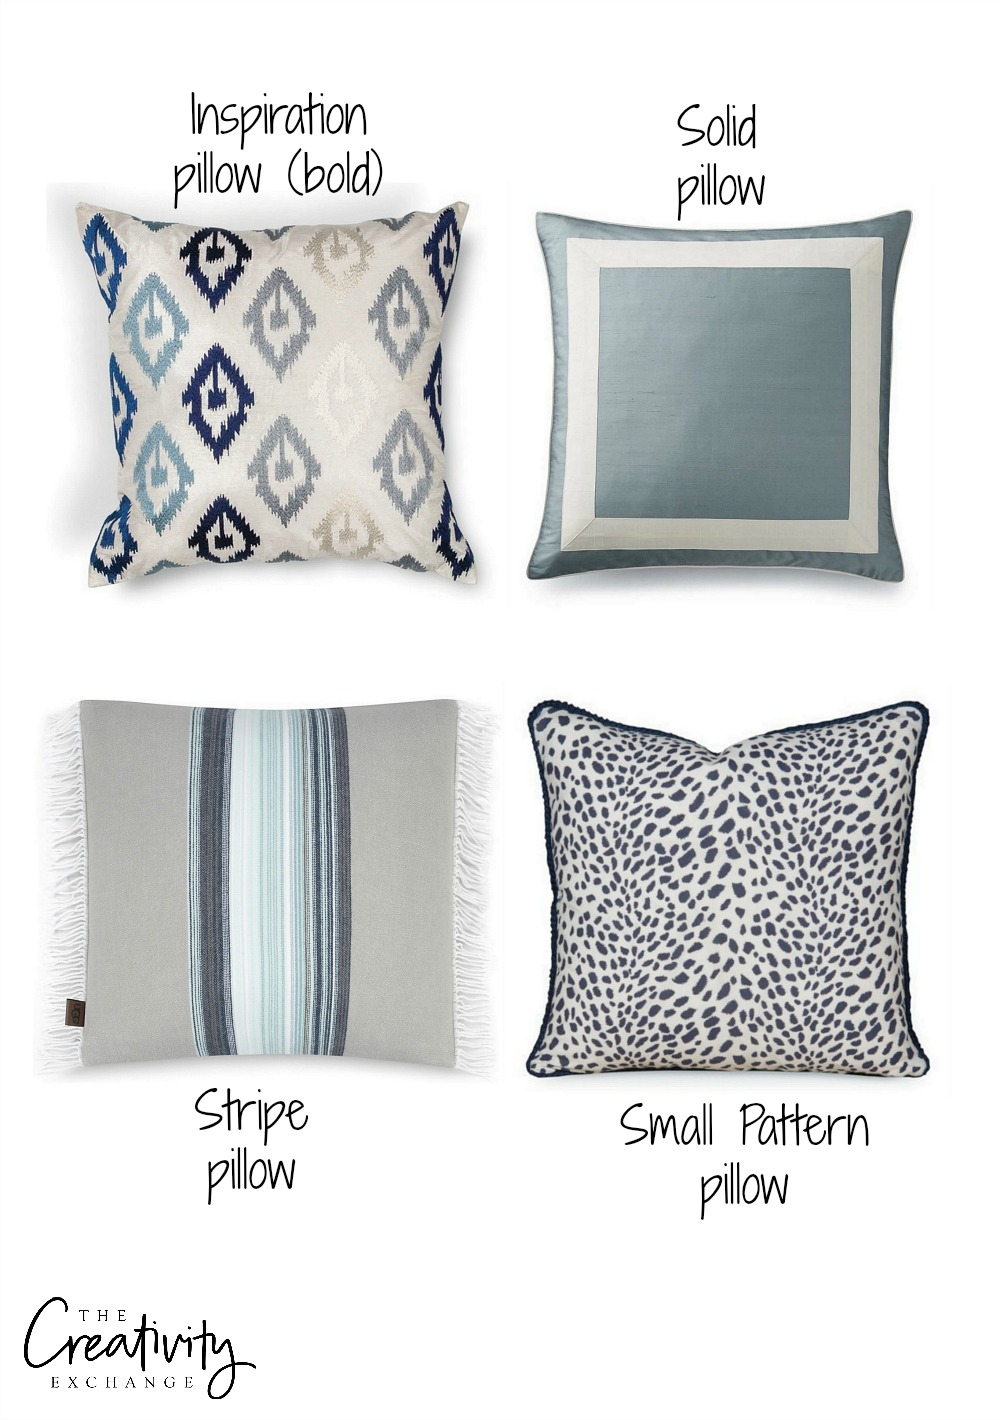 How to mix fabric and pillow patterns and colors